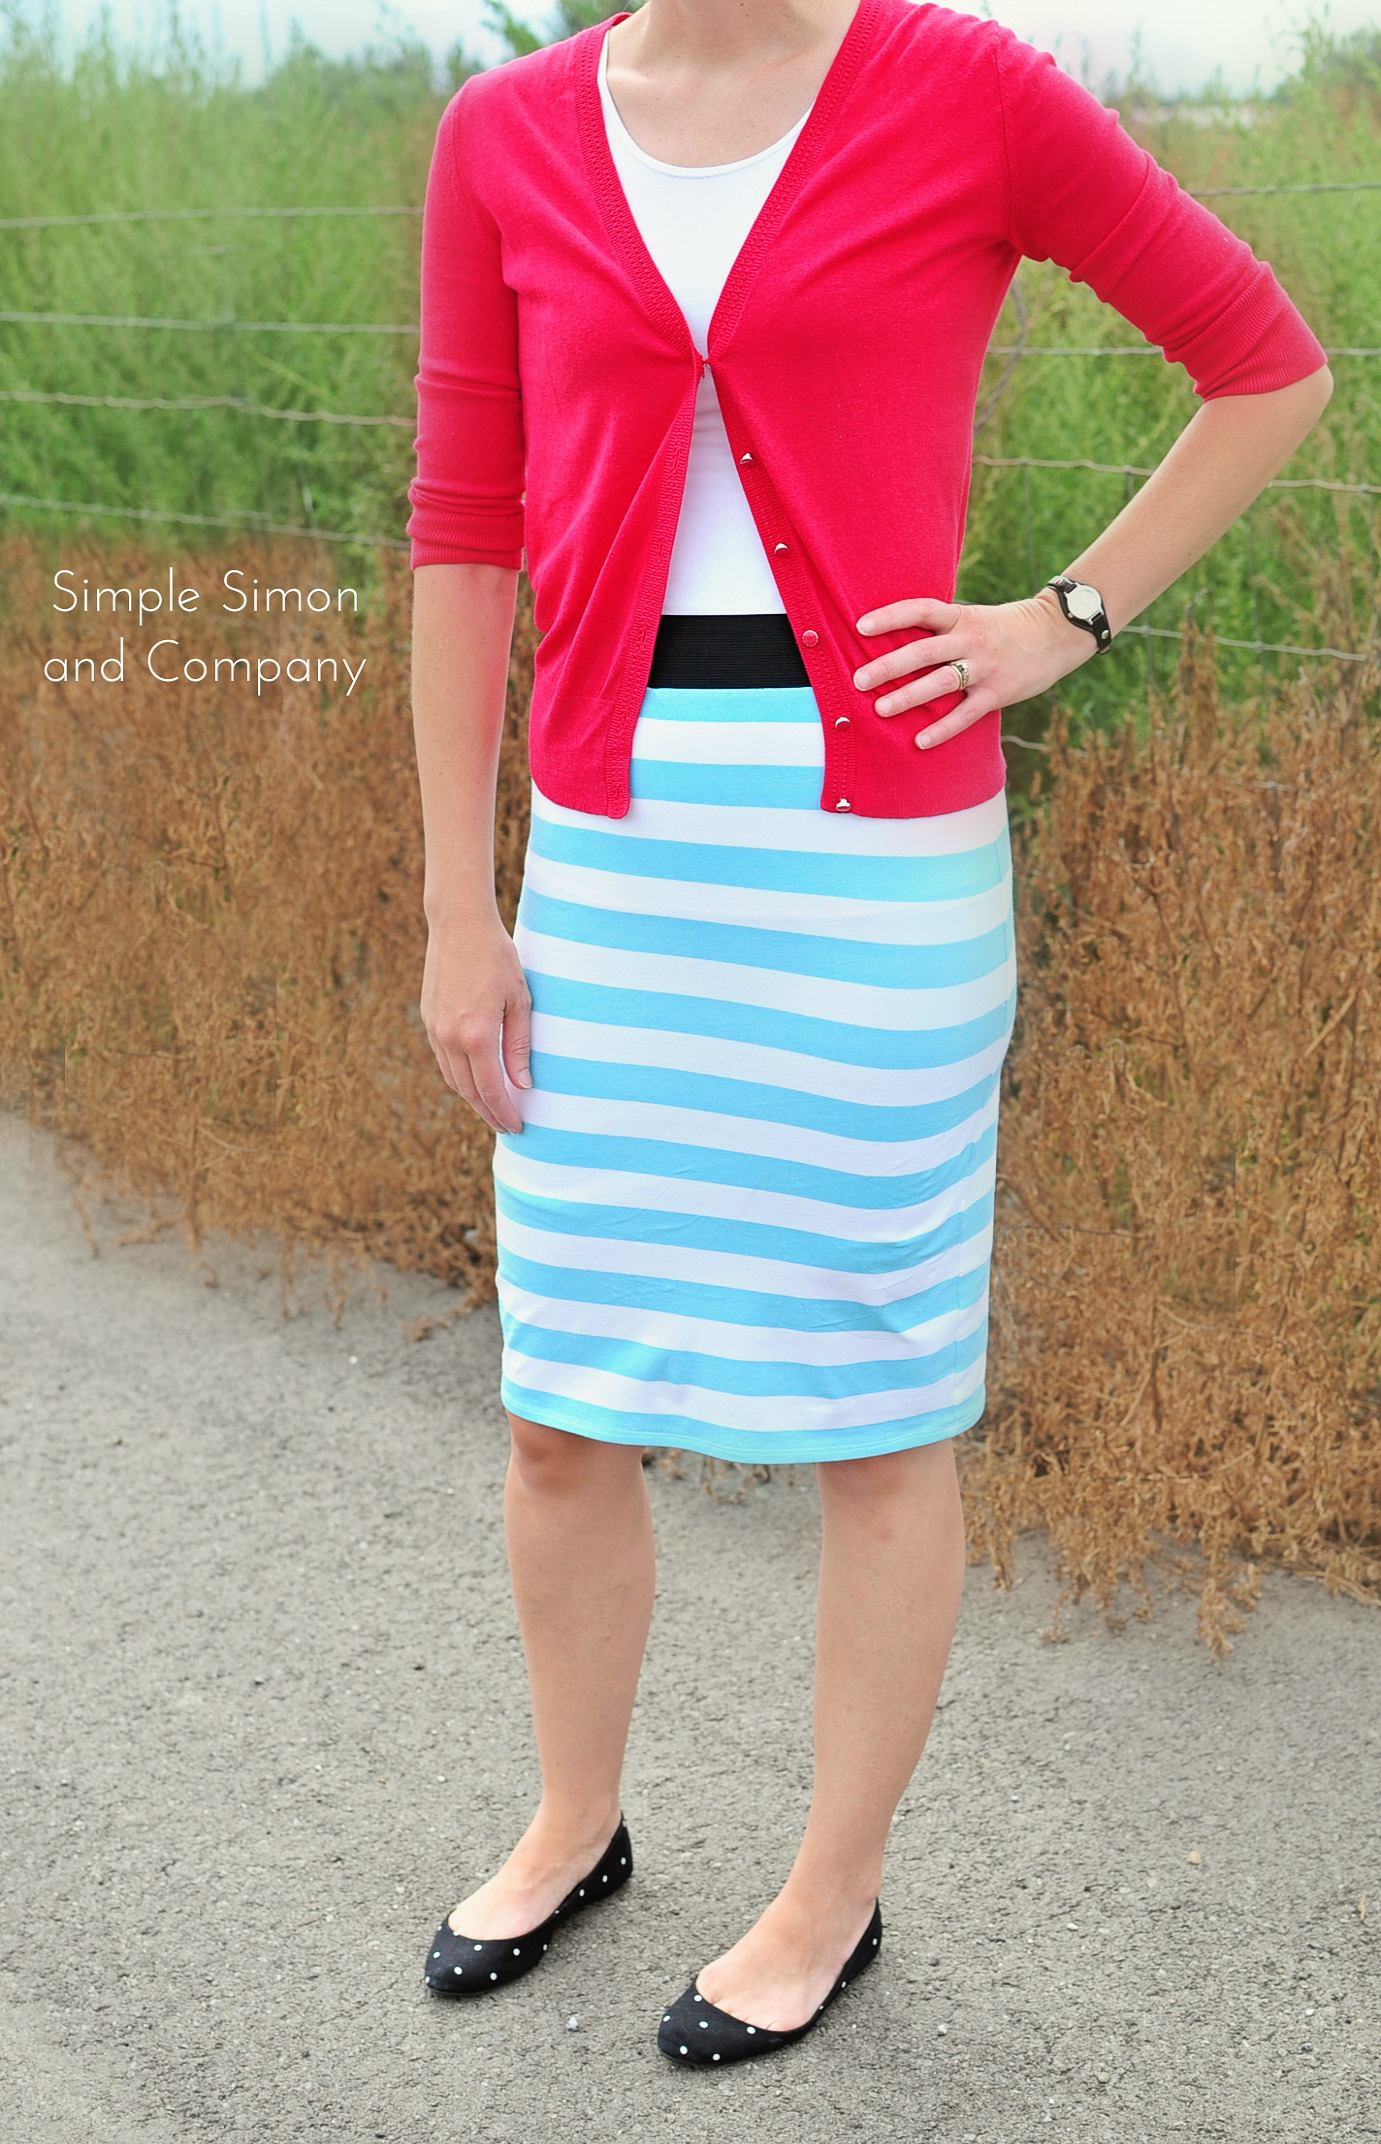 Easy Knit Skirt Tutorial - Simple Simon and Company